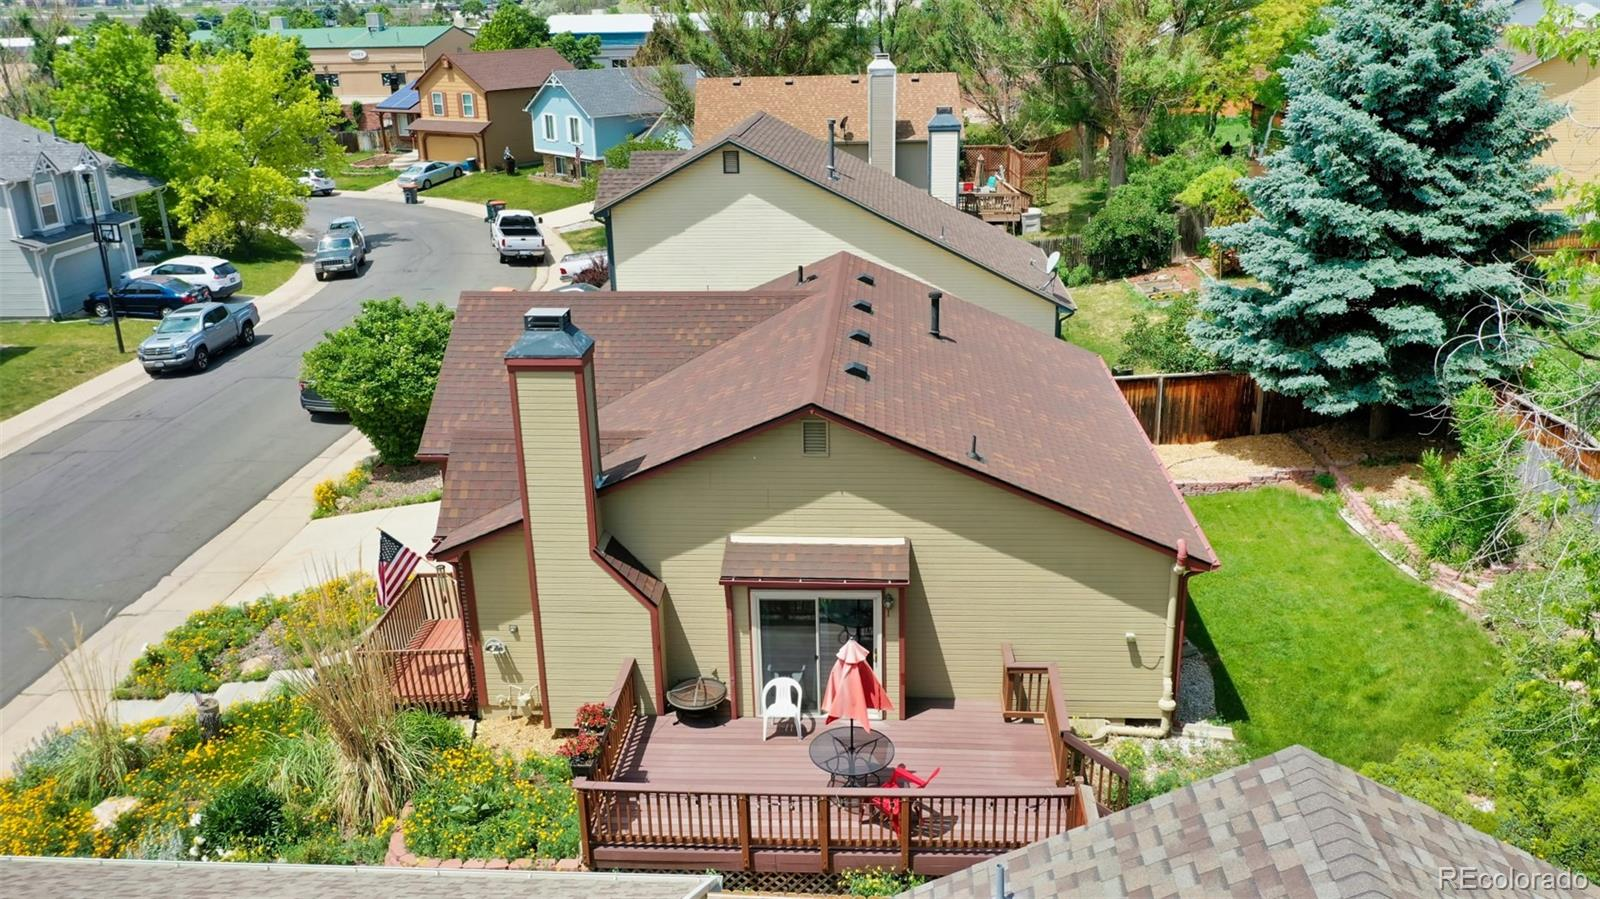 MLS# 3885943 - 29 - 313 Mulberry Circle, Broomfield, CO 80020